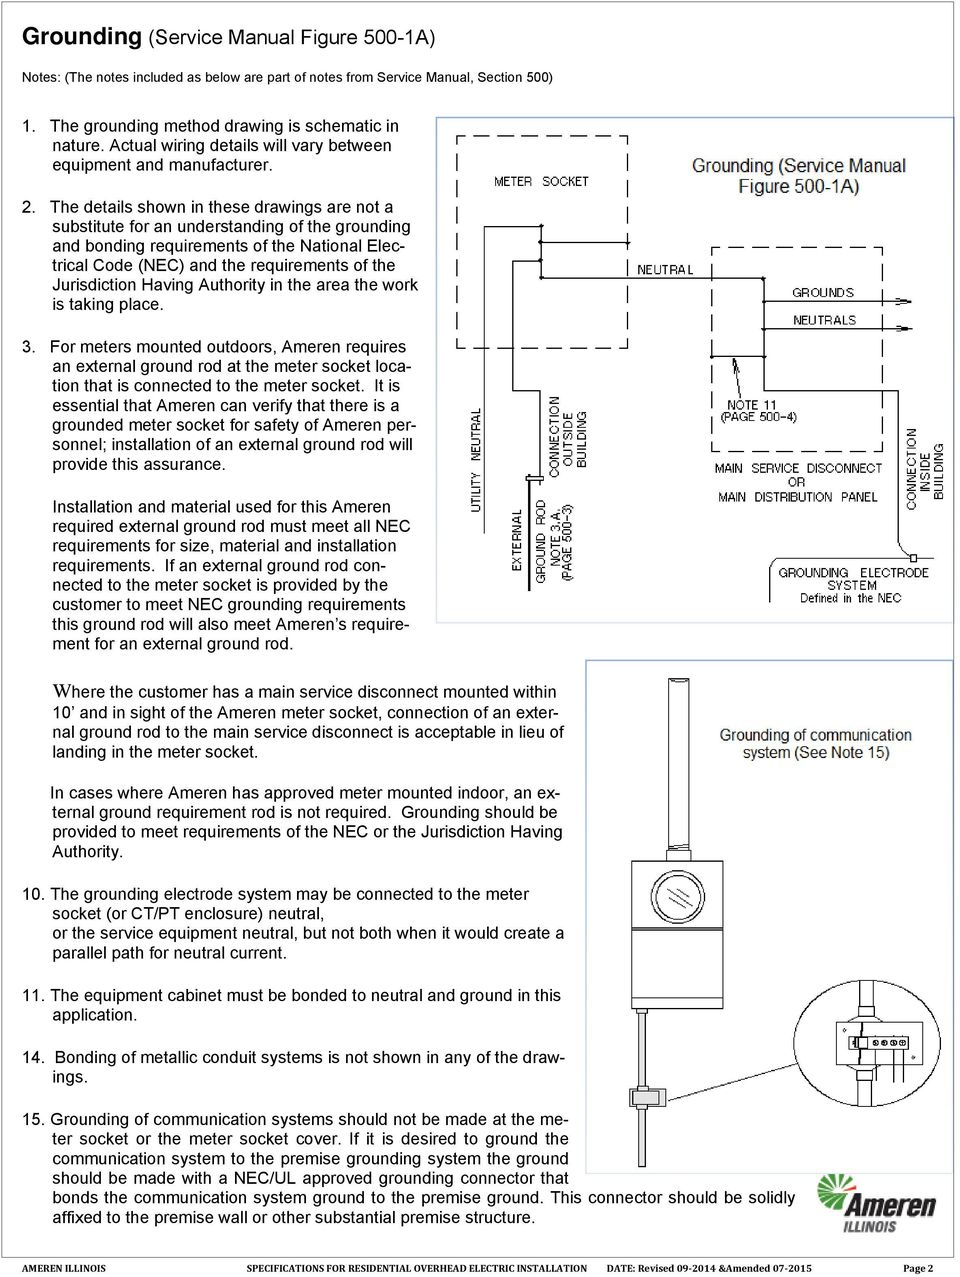 Please Check With Your Local Inspection Authority For Any Additional This Is The Wiring Diagram That I Use There Are Others Do Vary Details Shown In These Drawings Not A Substitute An Understanding Of Grounding